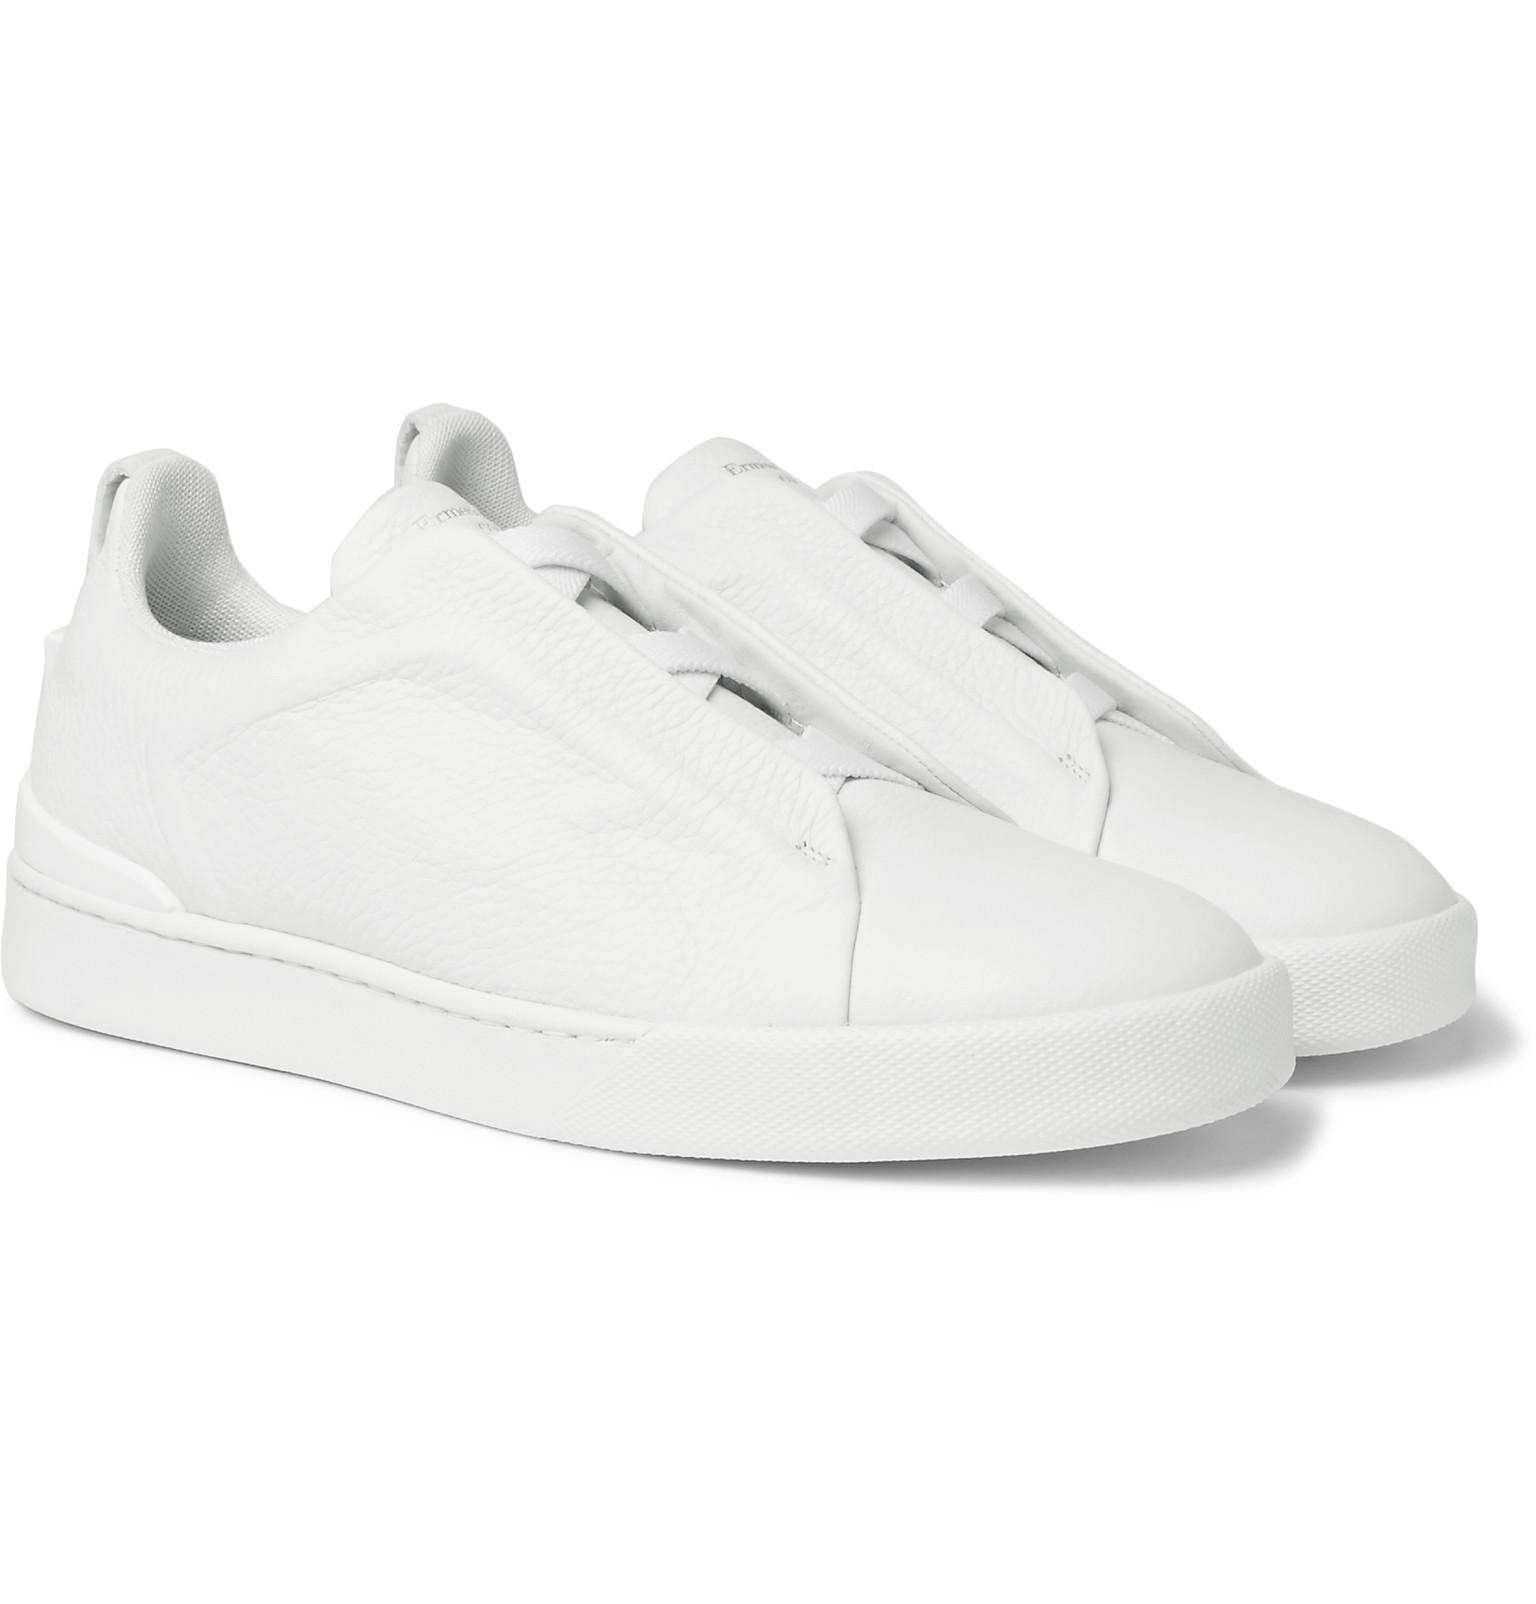 Z Zegna Imperia Leather Slip-On Sneakers fashionable cheap price sale browse nX3VKAxgHo